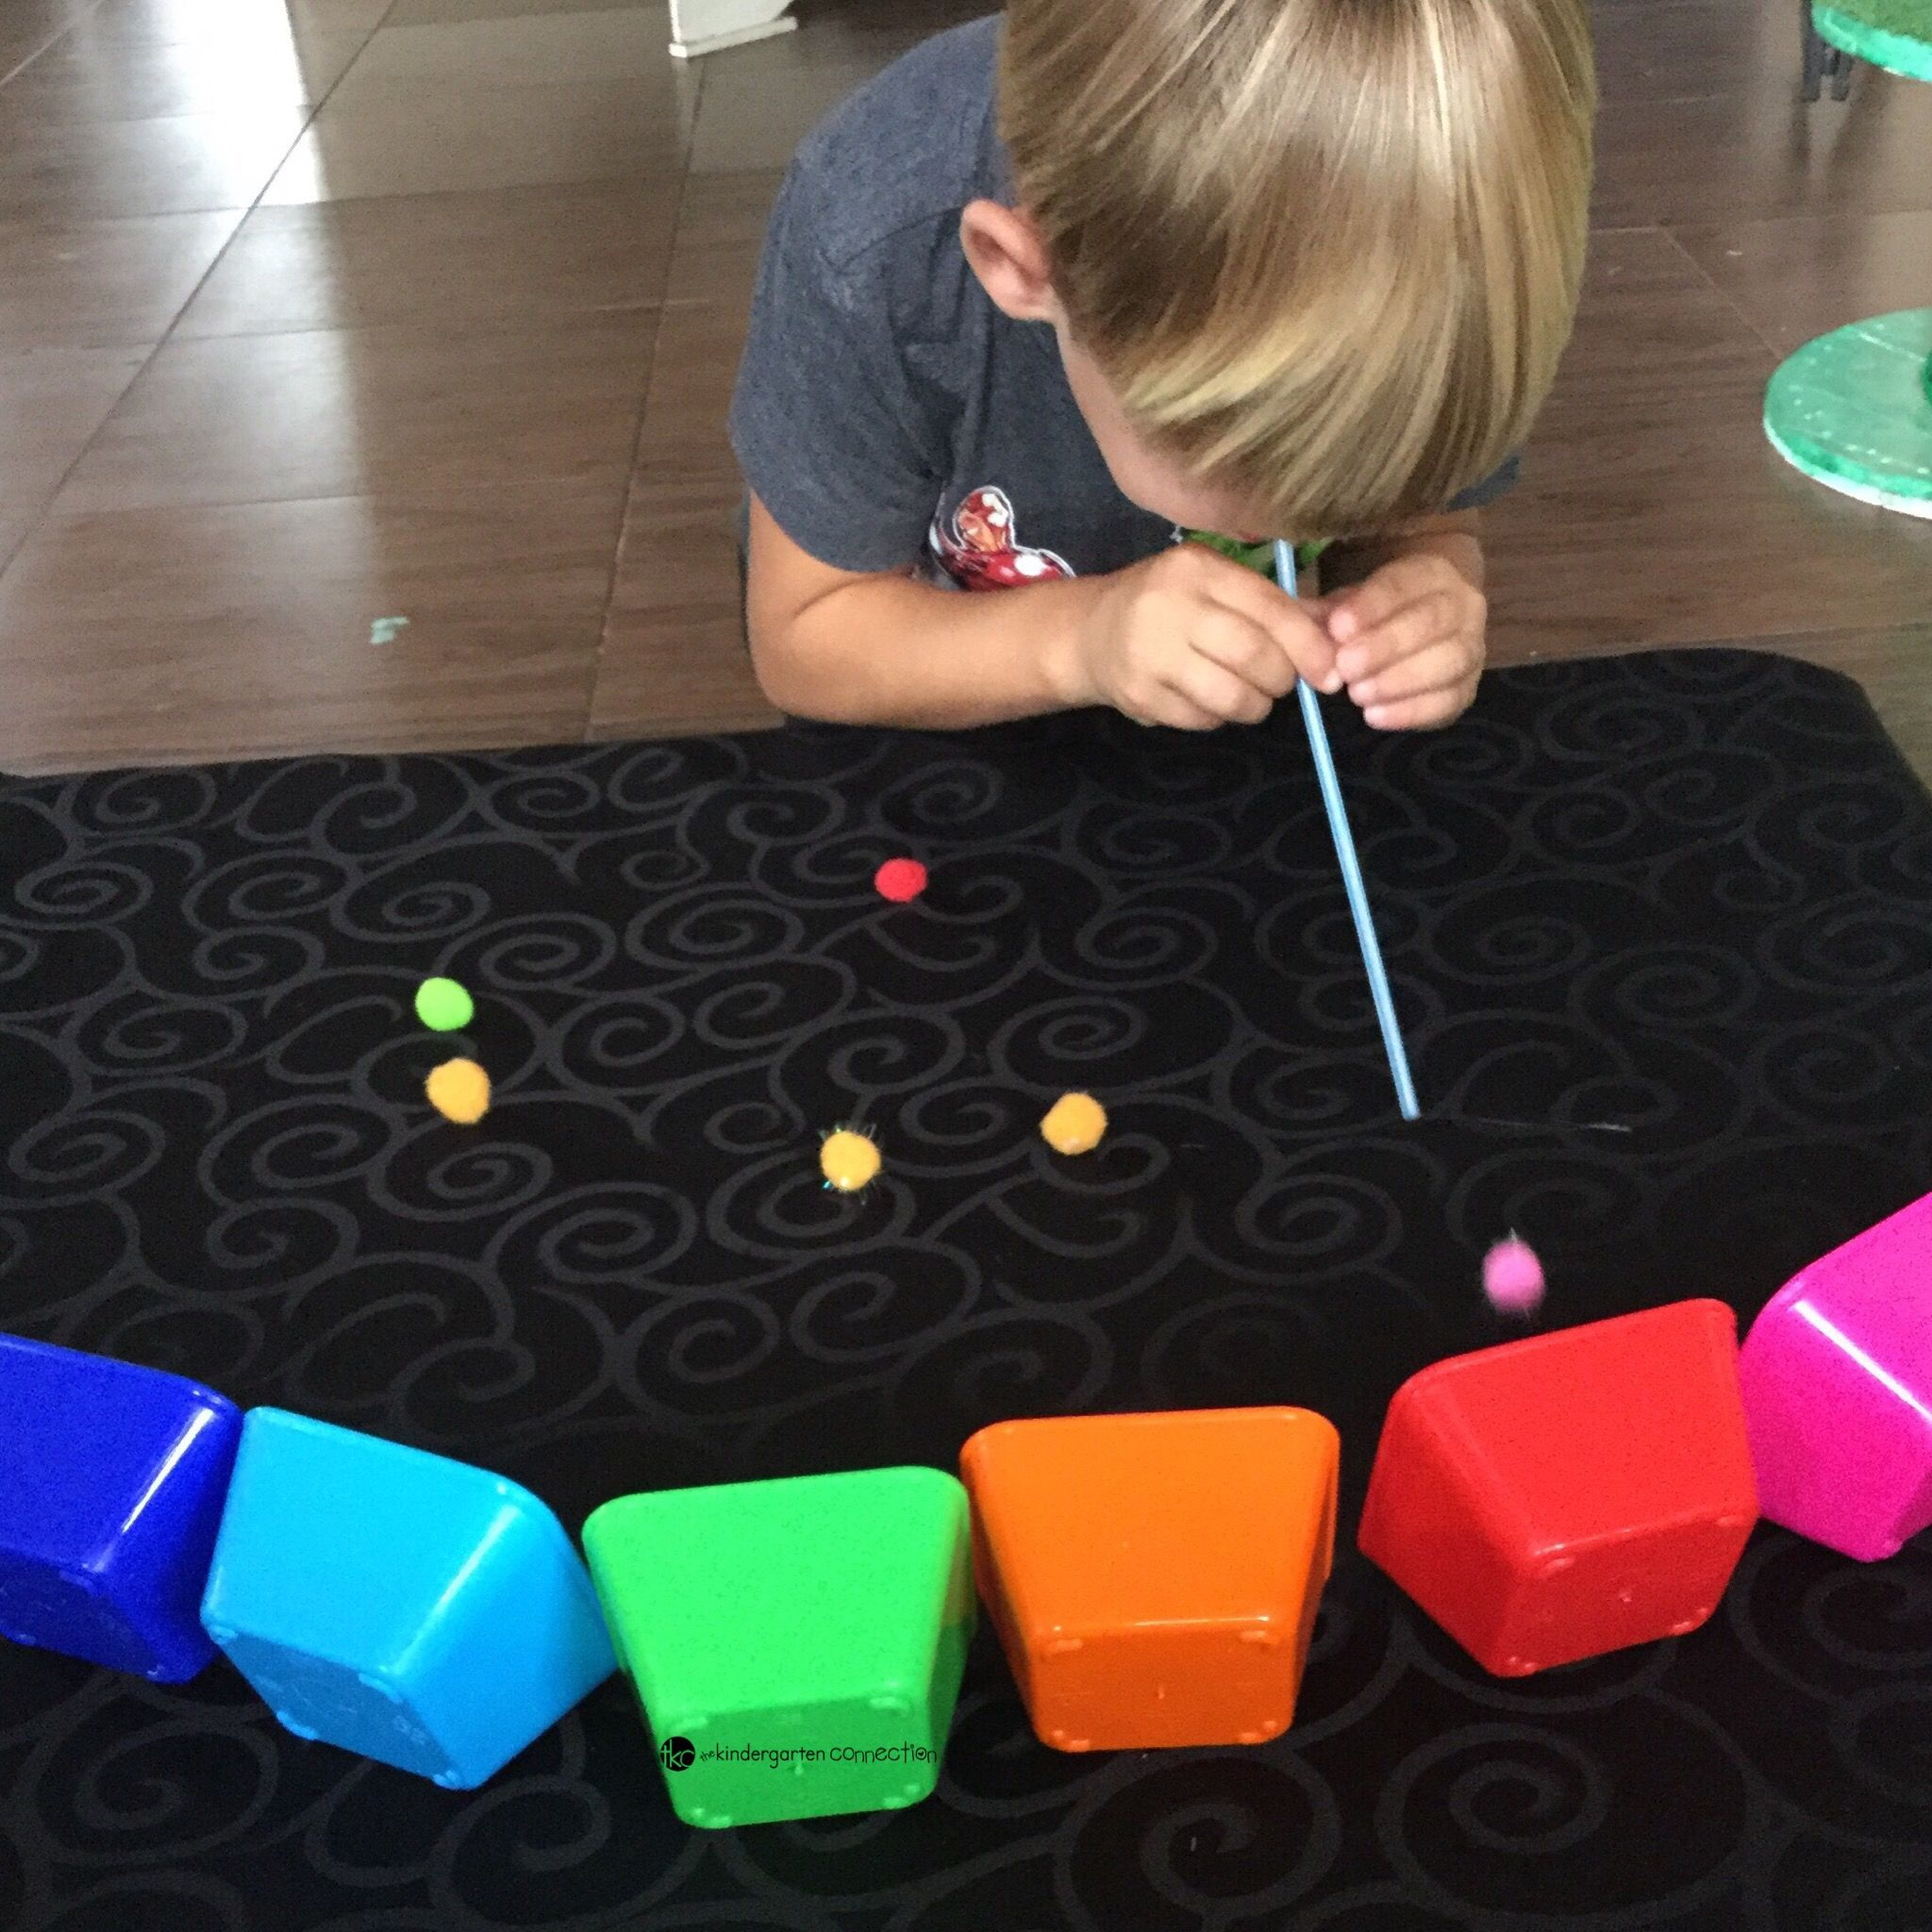 Primary color games for preschoolers - Primary Color Games For Preschoolers 38